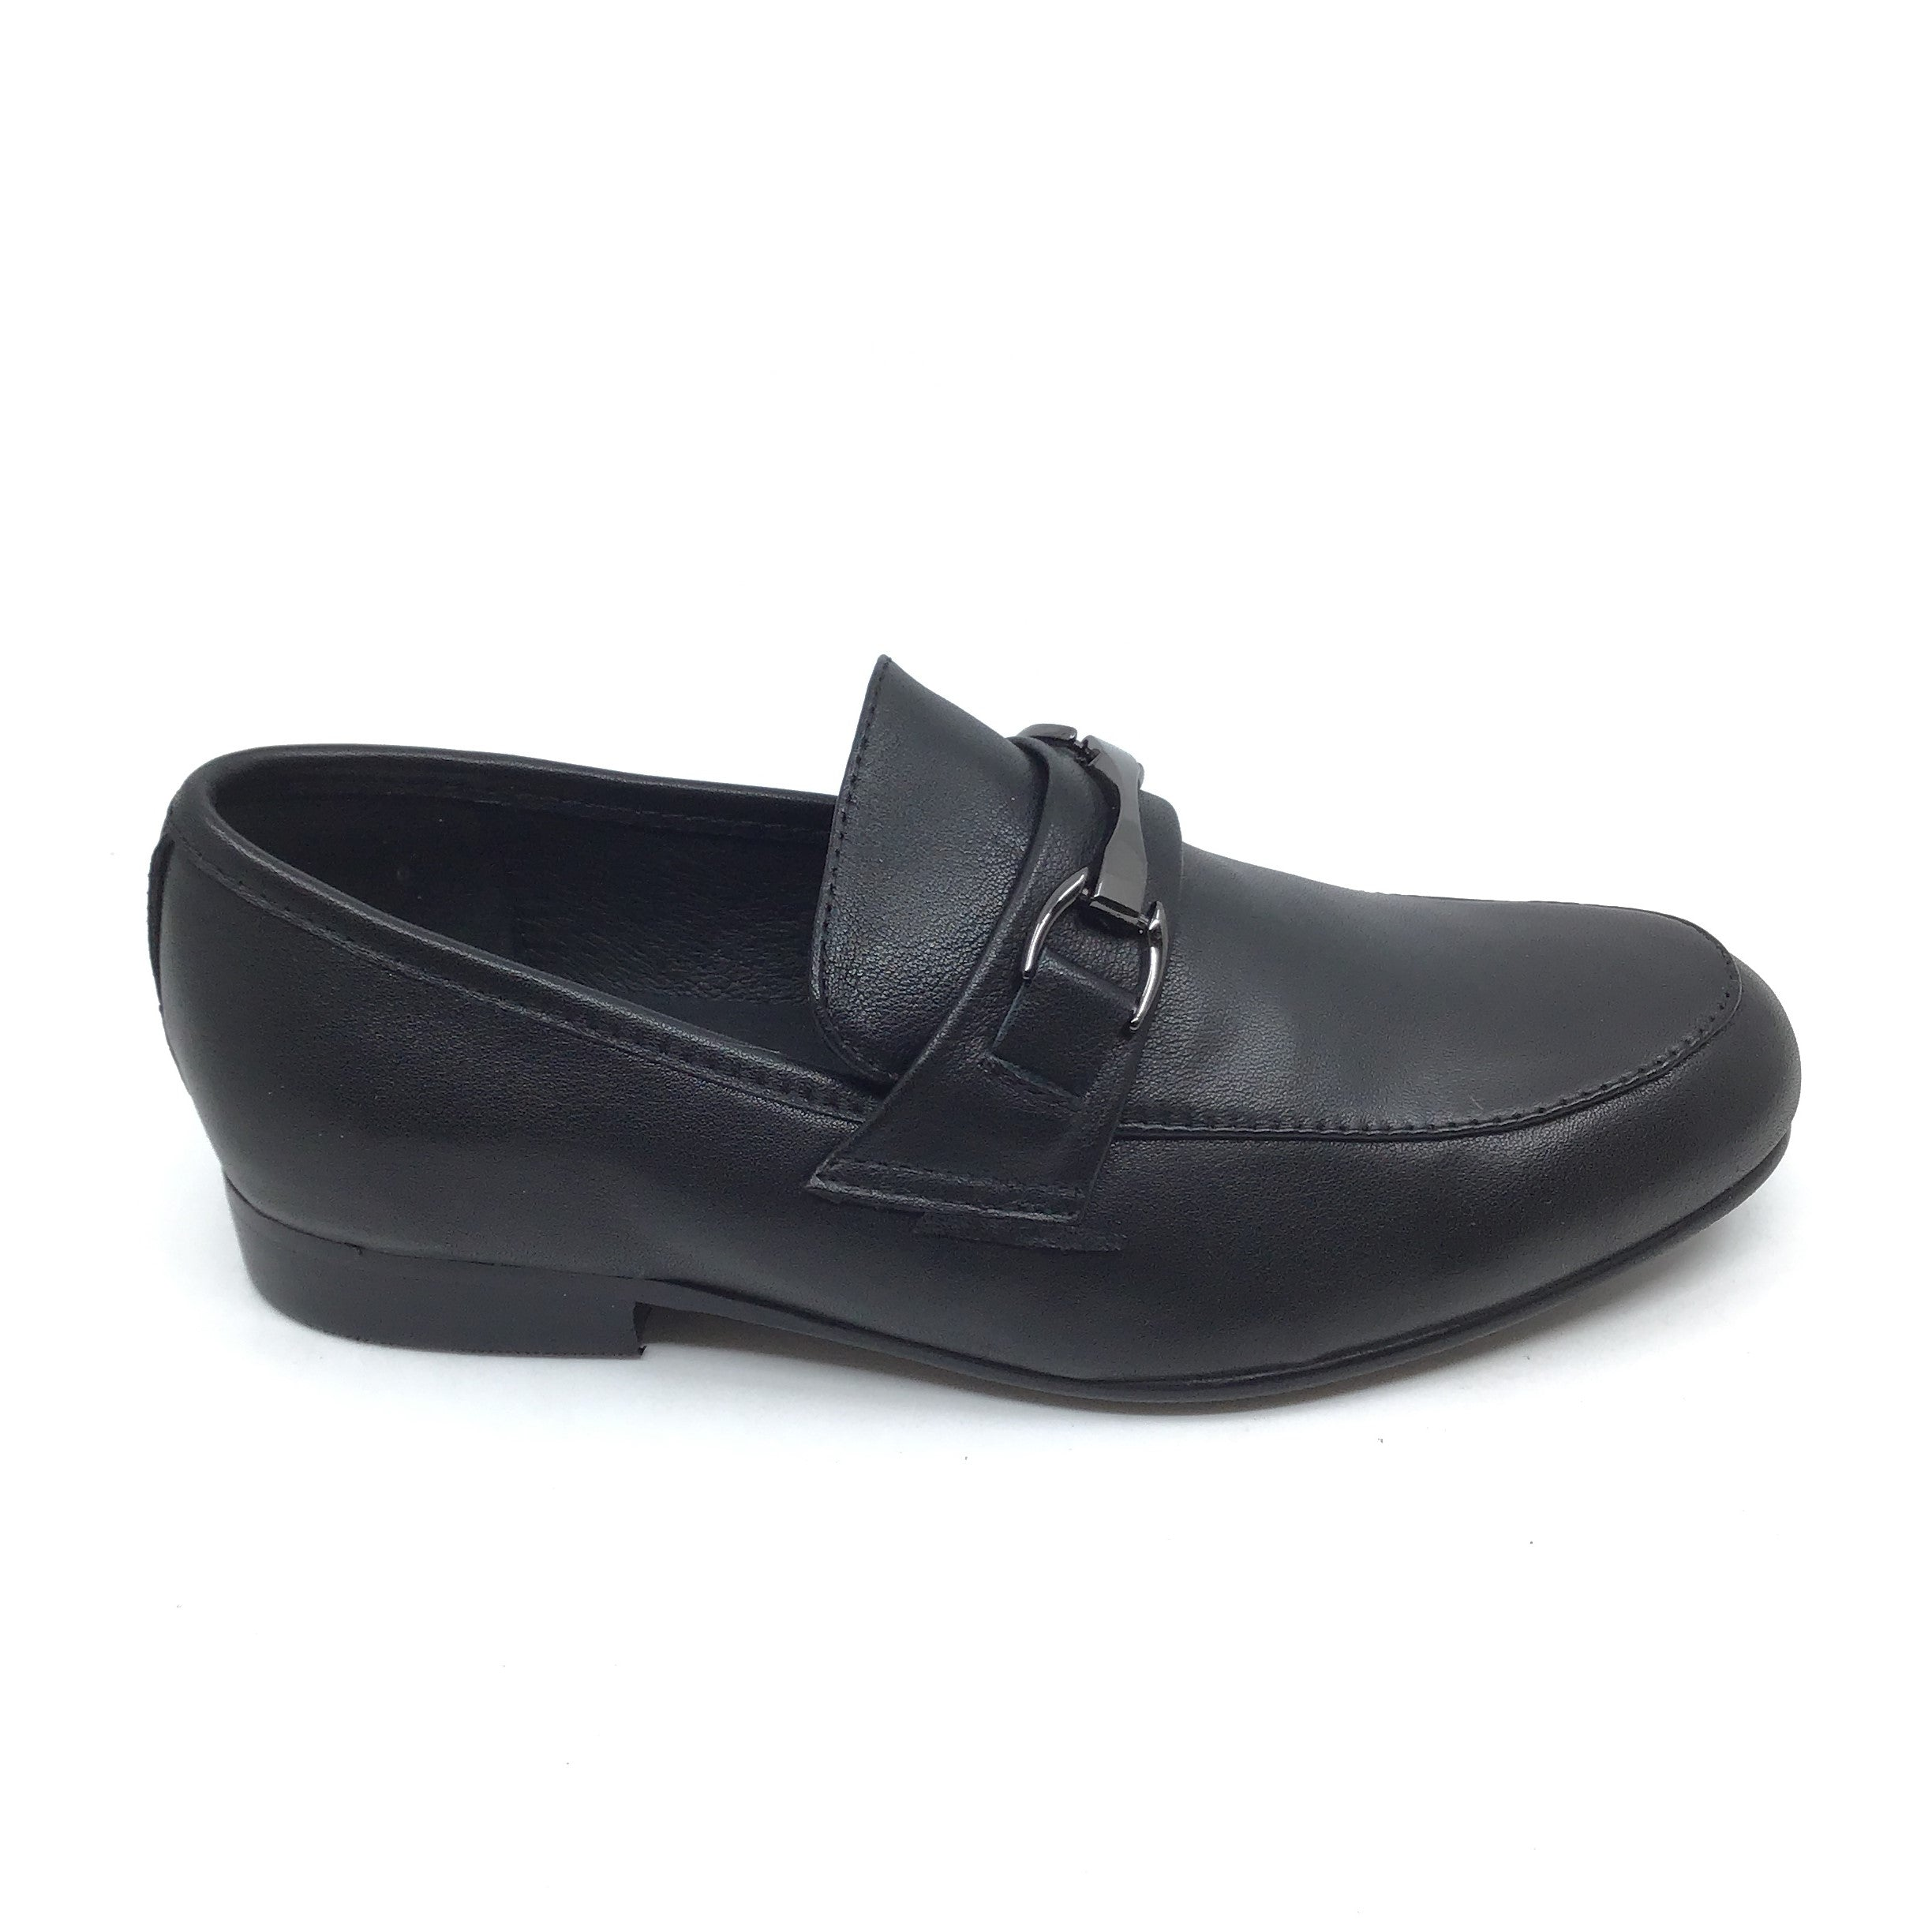 Venettini Black Dress Shoe with Black Chain